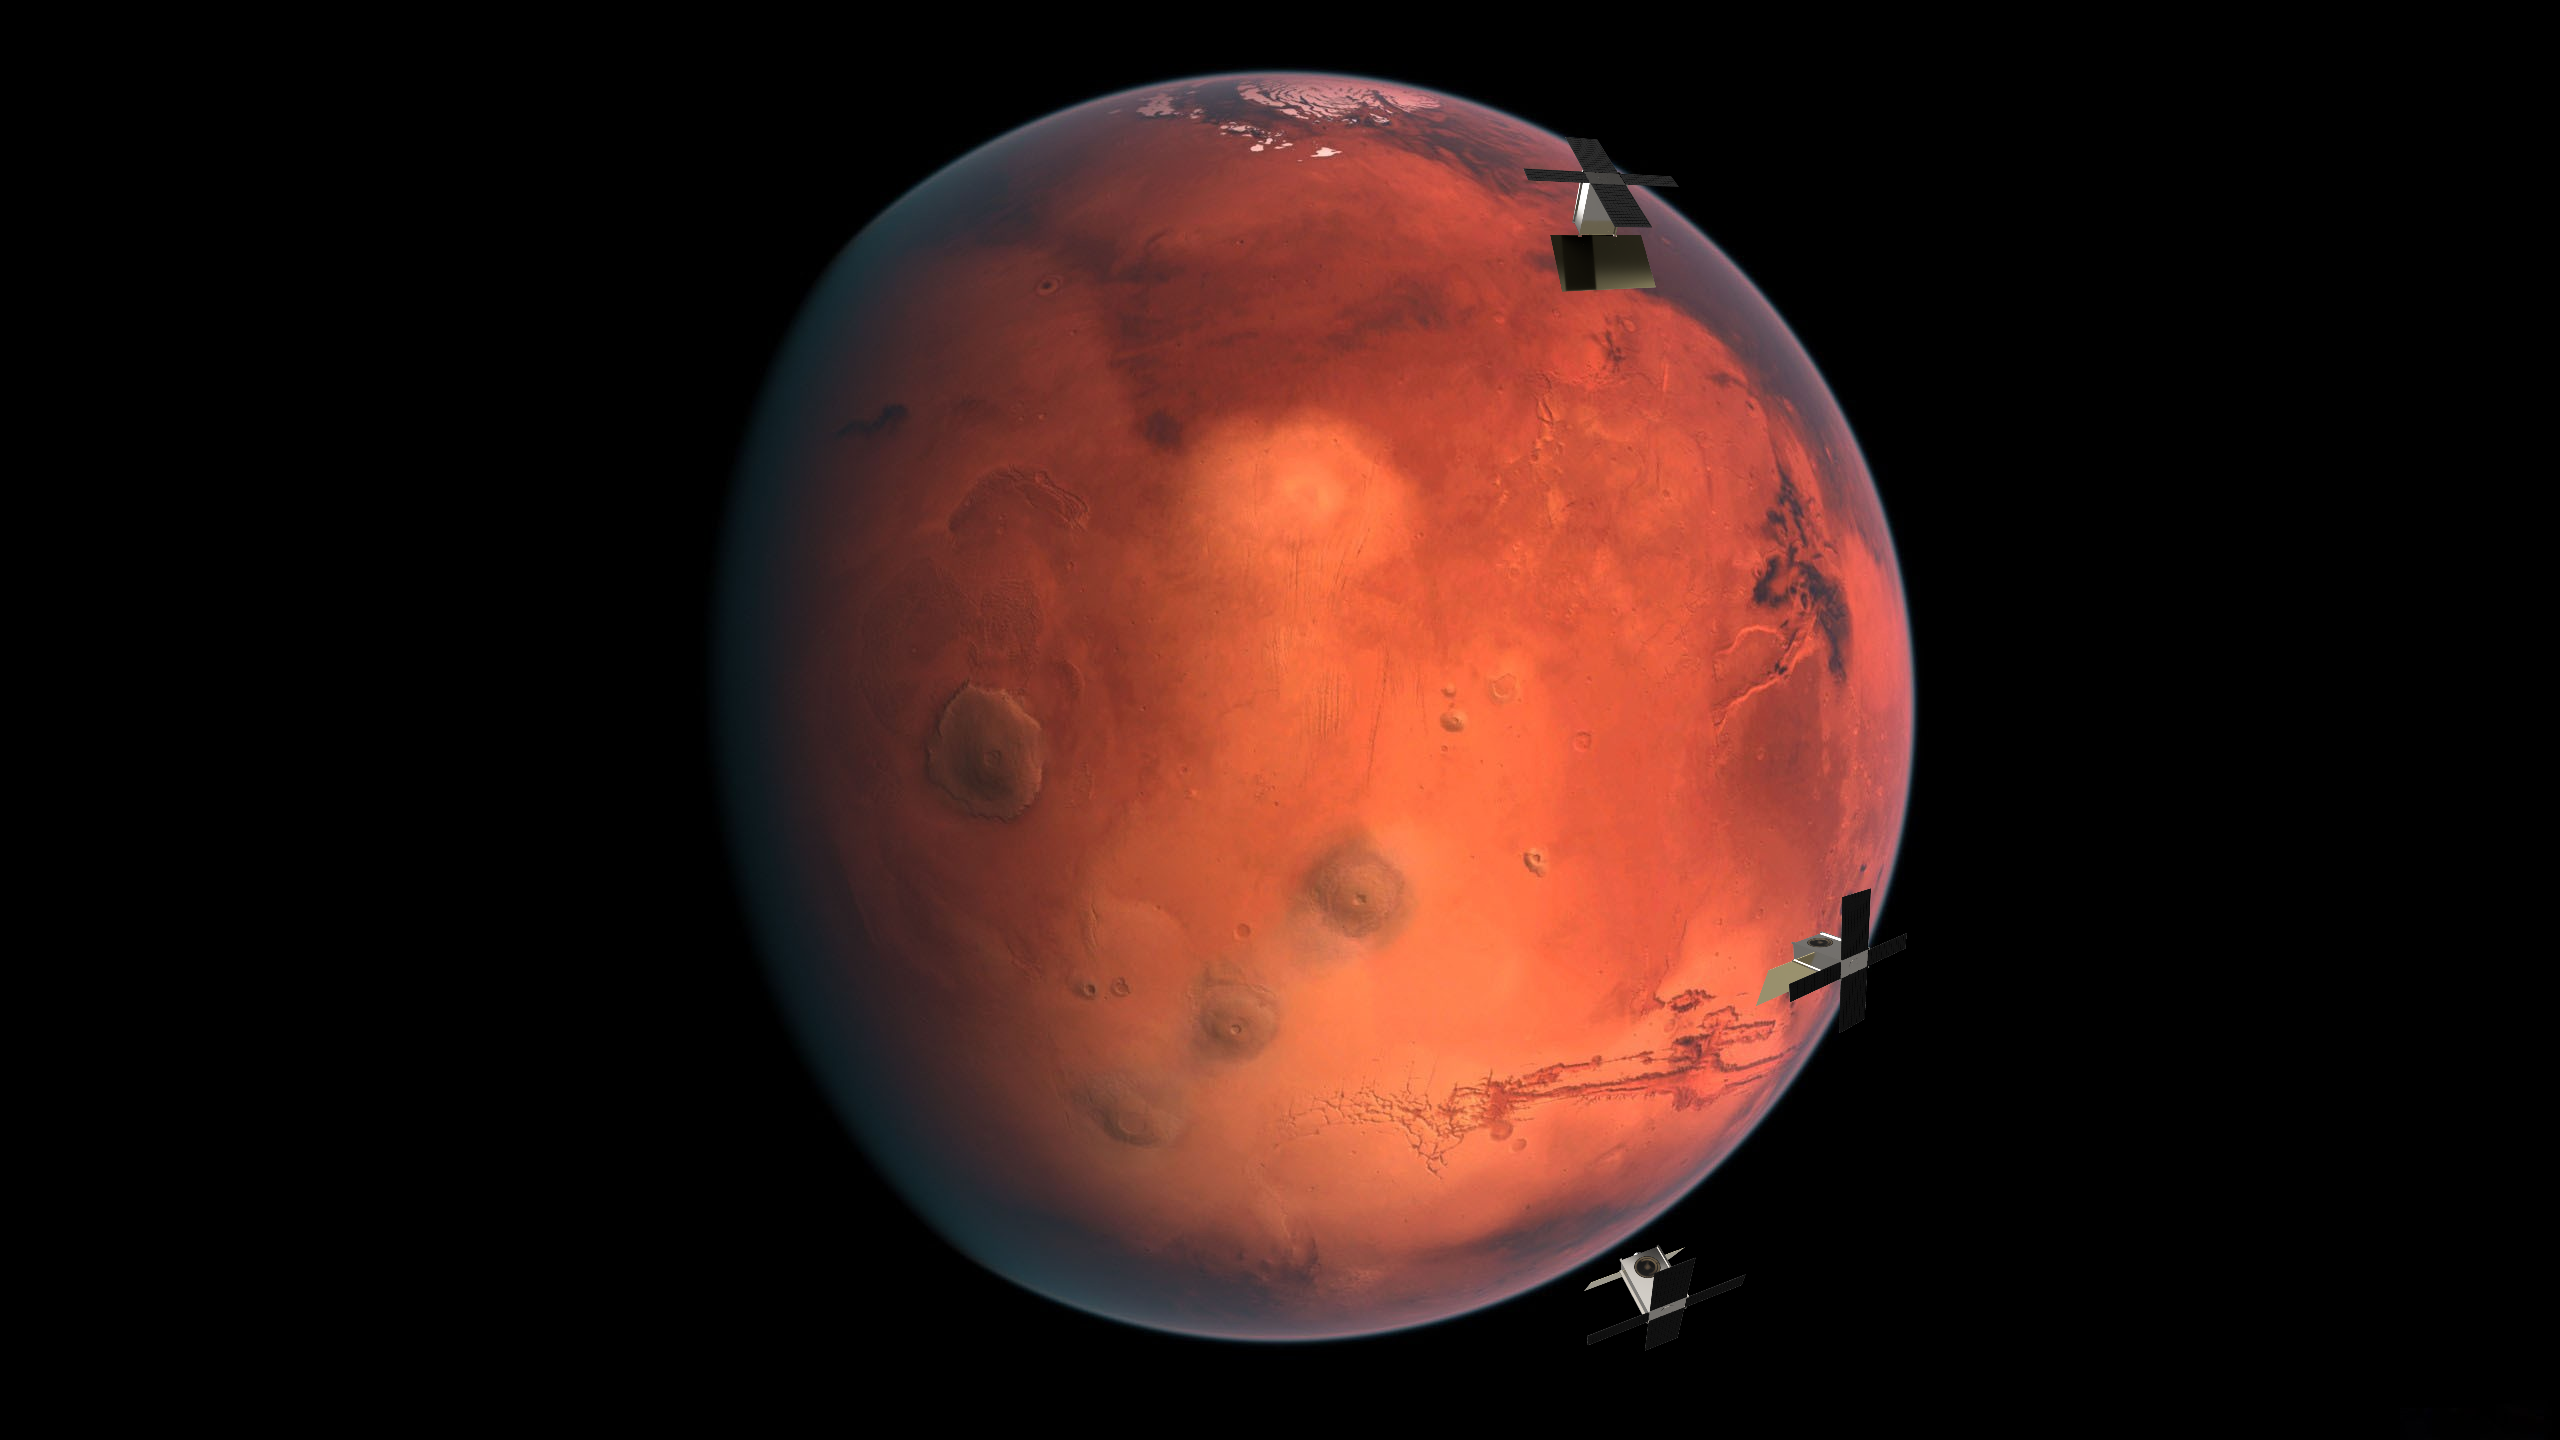 Photo rendering of the planet Mars